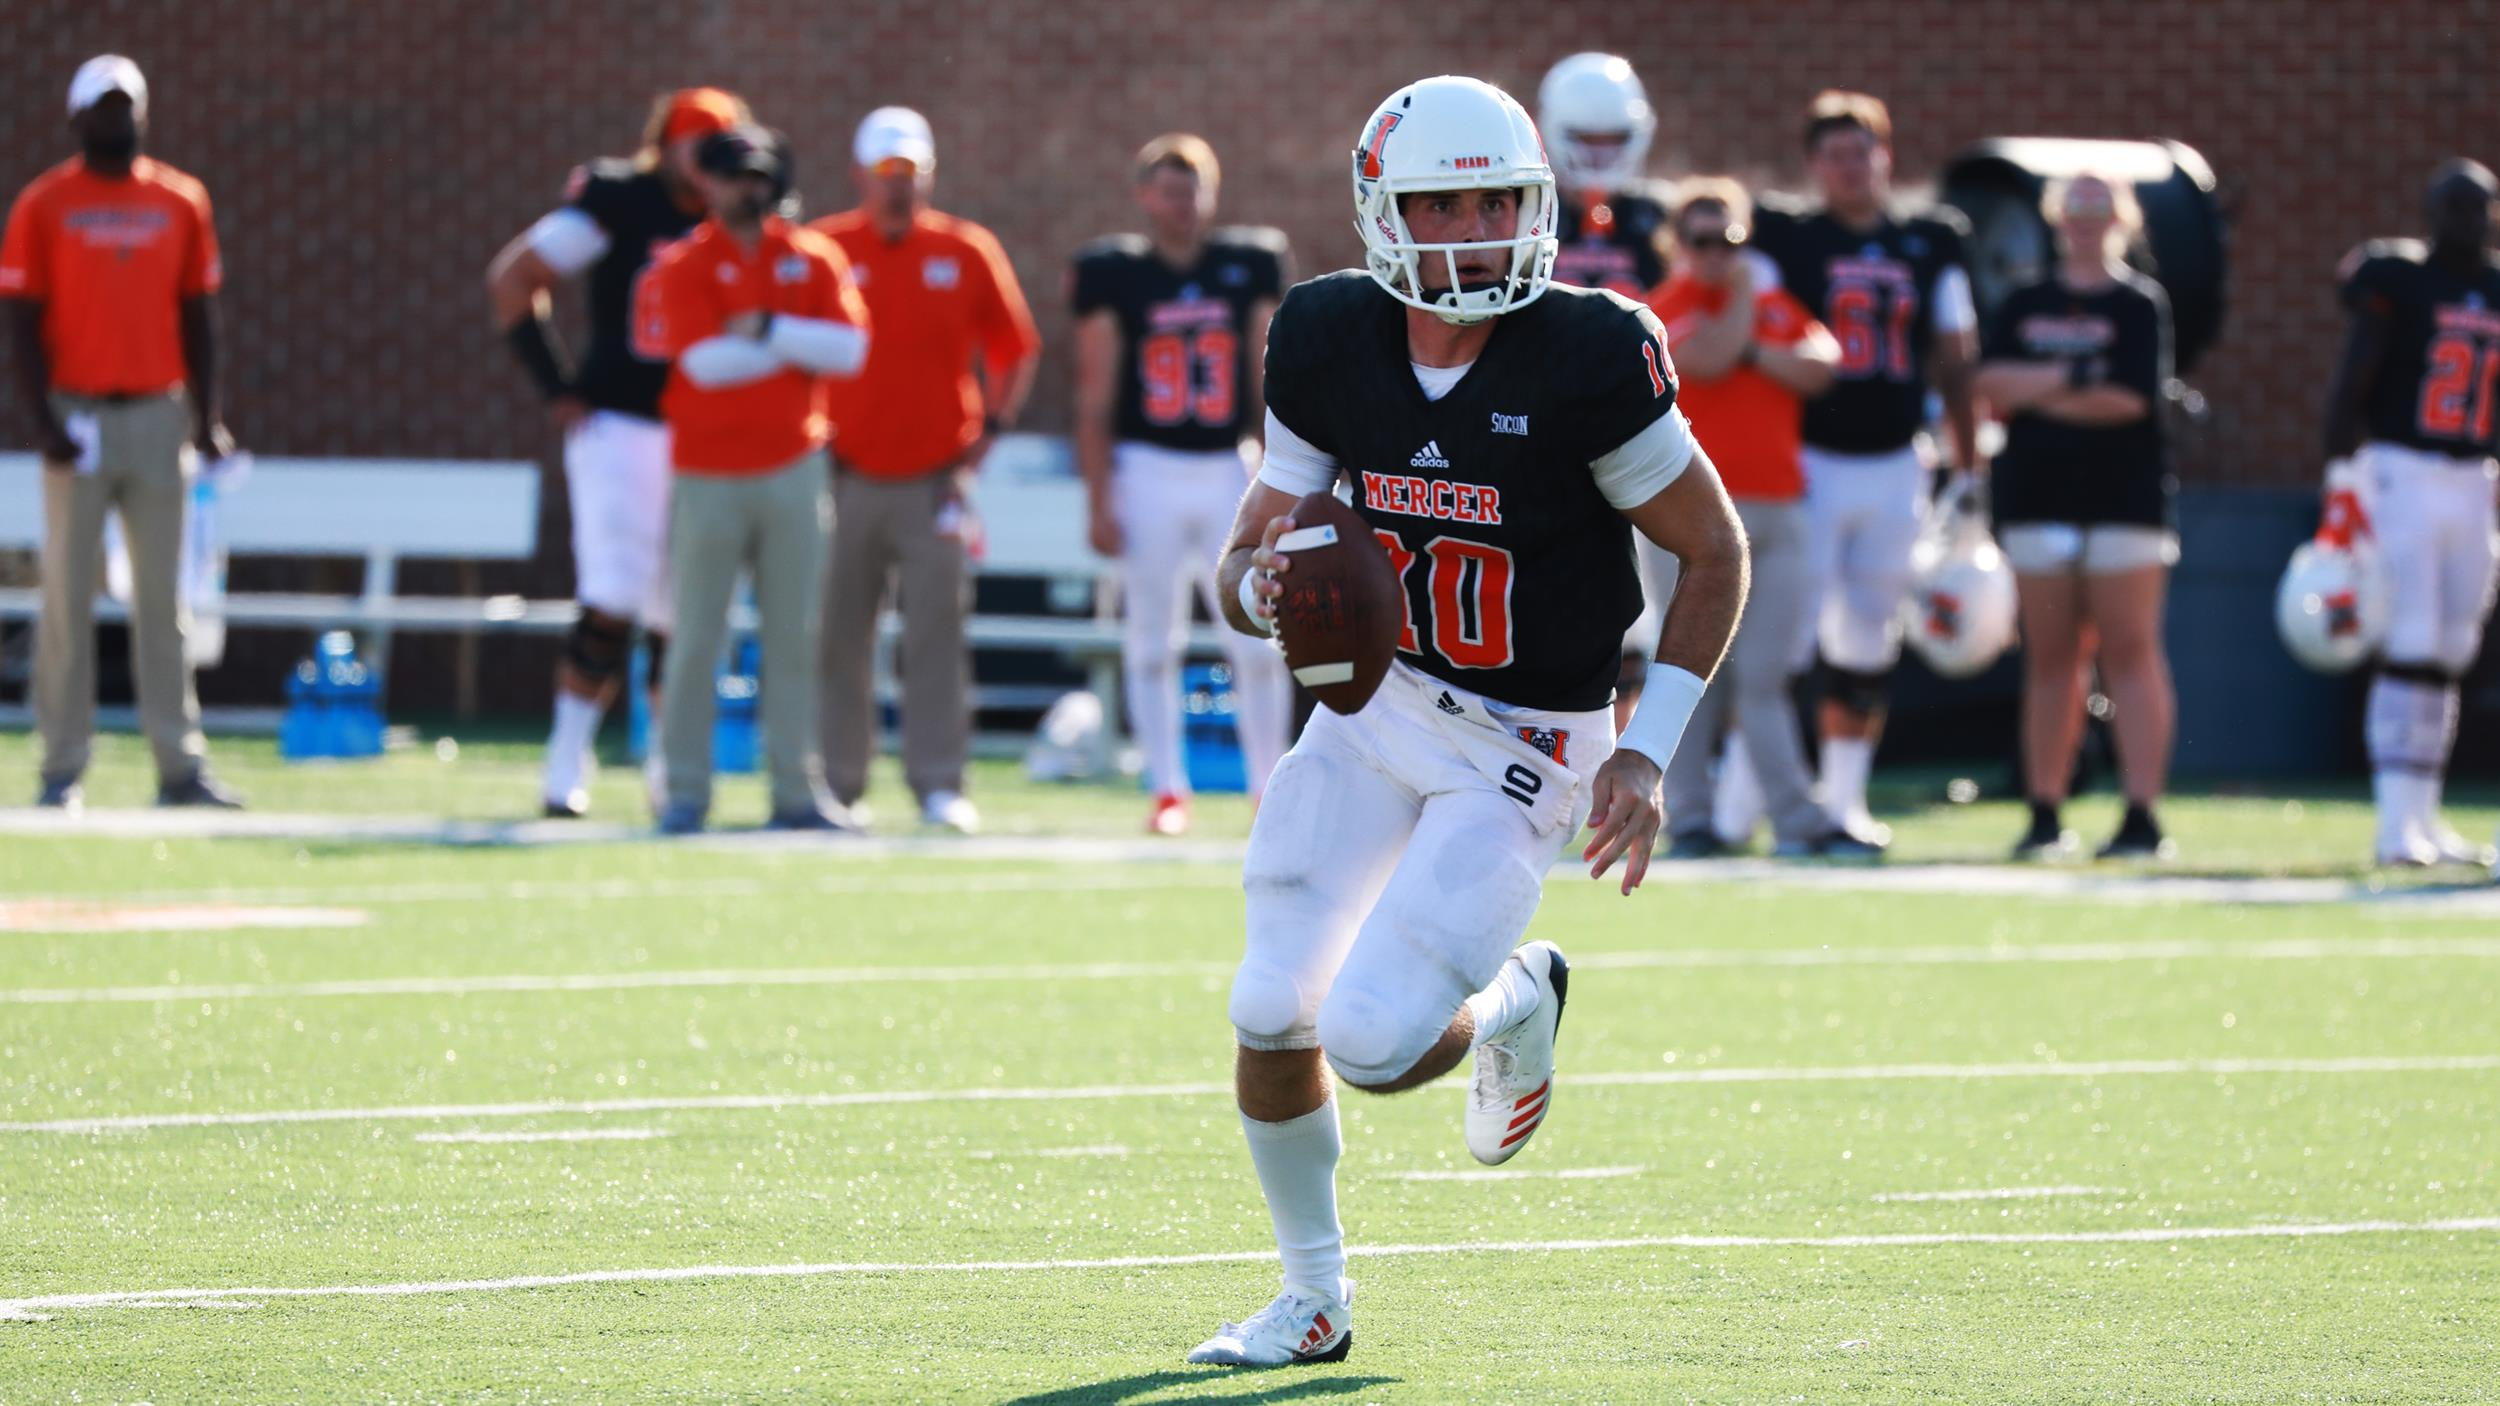 6f63331051f Robert Riddle Named to Jerry Rice Award Watch List - Mercer ...